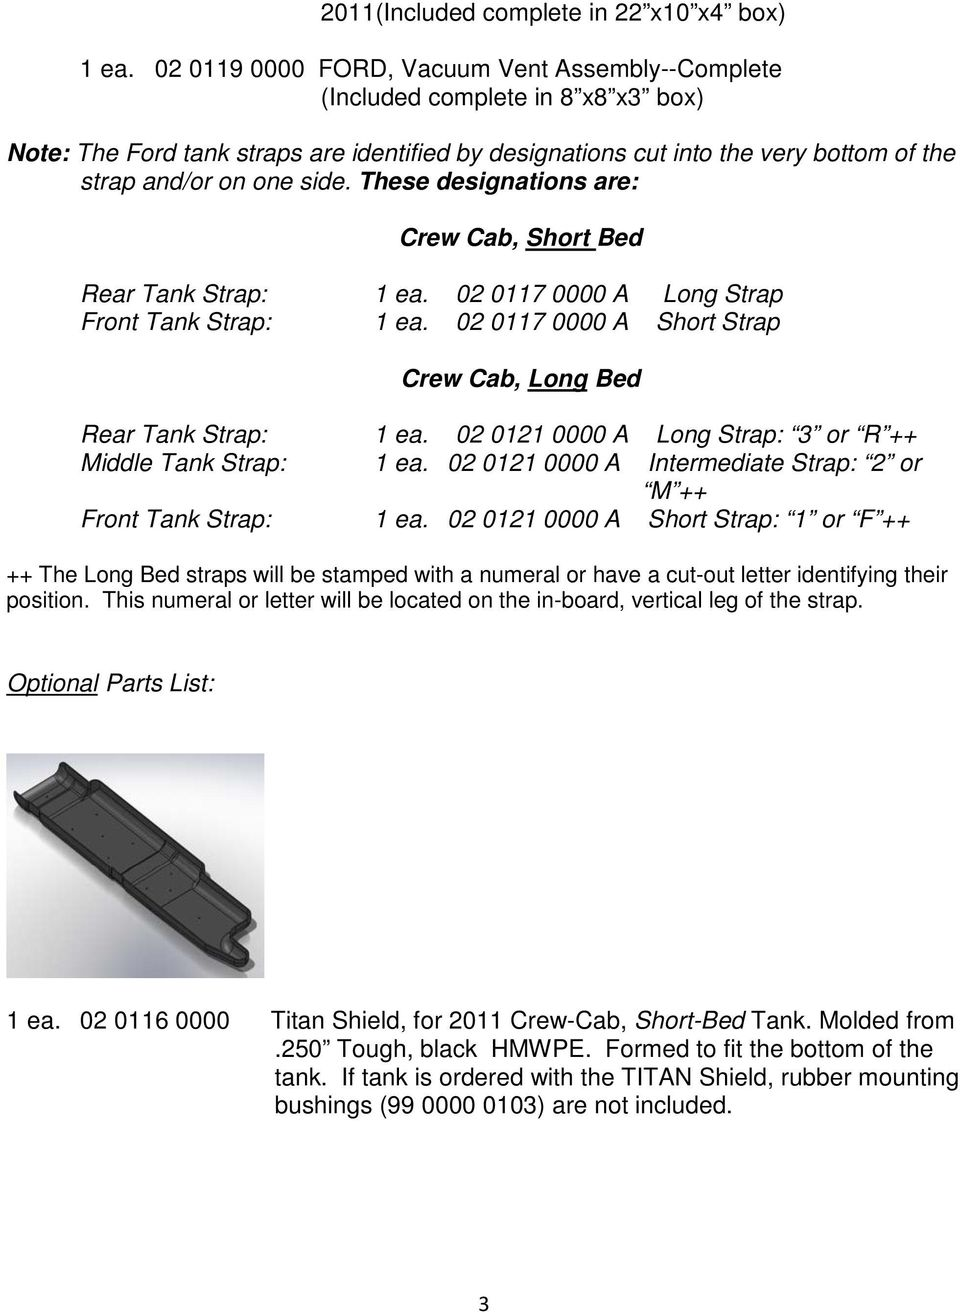 These designations are: Crew Cab, Short Bed Rear Tank Strap: 1 ea. 02 0117 0000 A Long Strap Front Tank Strap: 1 ea. 02 0117 0000 A Short Strap Crew Cab, Long Bed Rear Tank Strap: 1 ea.